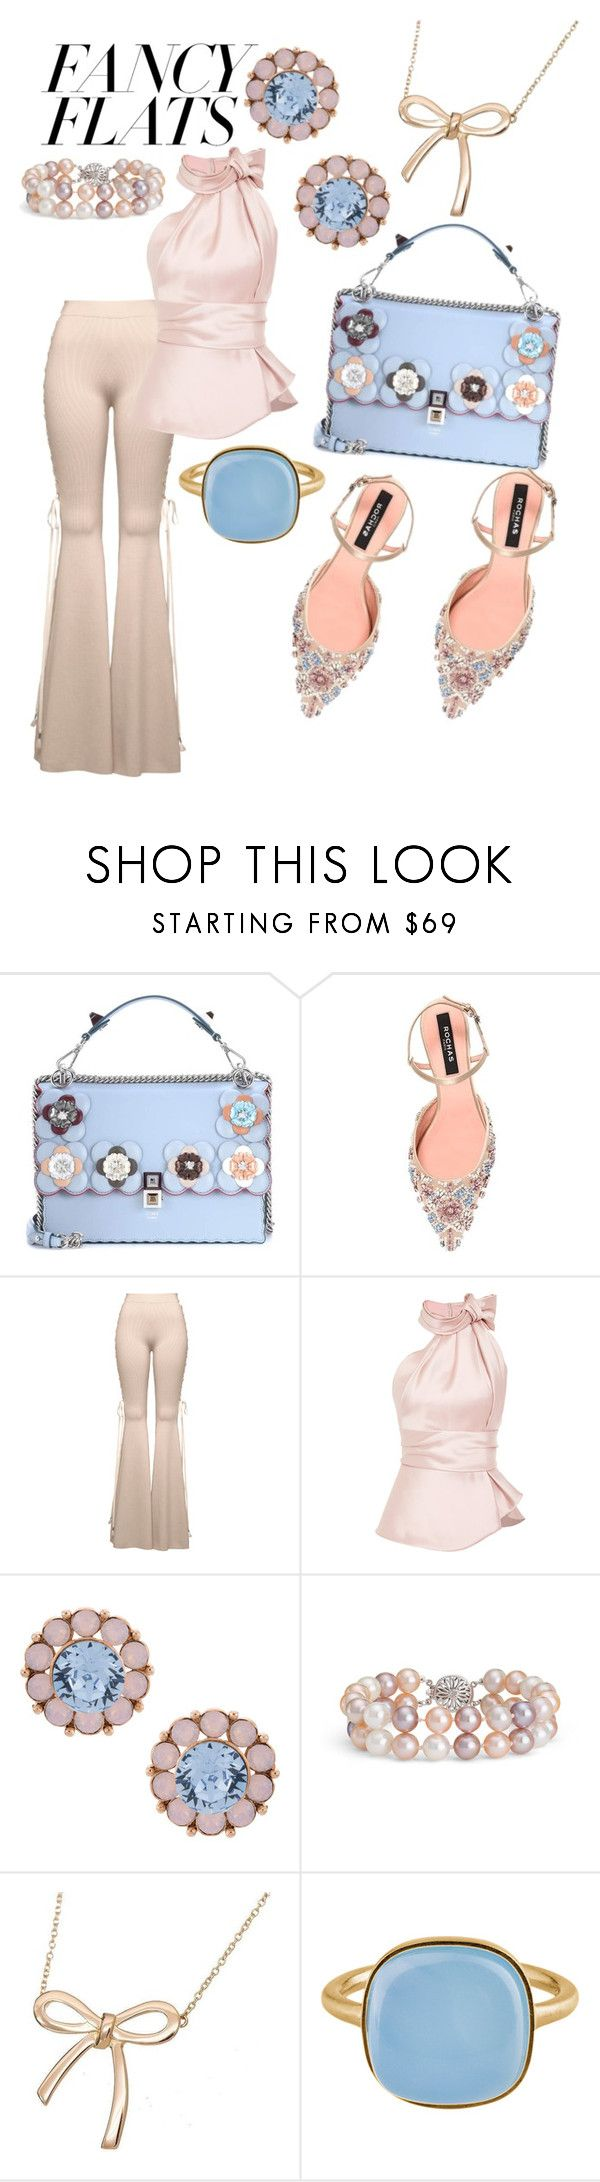 """""""Fancy Flats!!"""" by mary63348-1 ❤ liked on Polyvore featuring Fendi, Rochas, Puma, Serpui, Blue Nile, Tiffany & Co., Pernille Corydon and chicflats"""